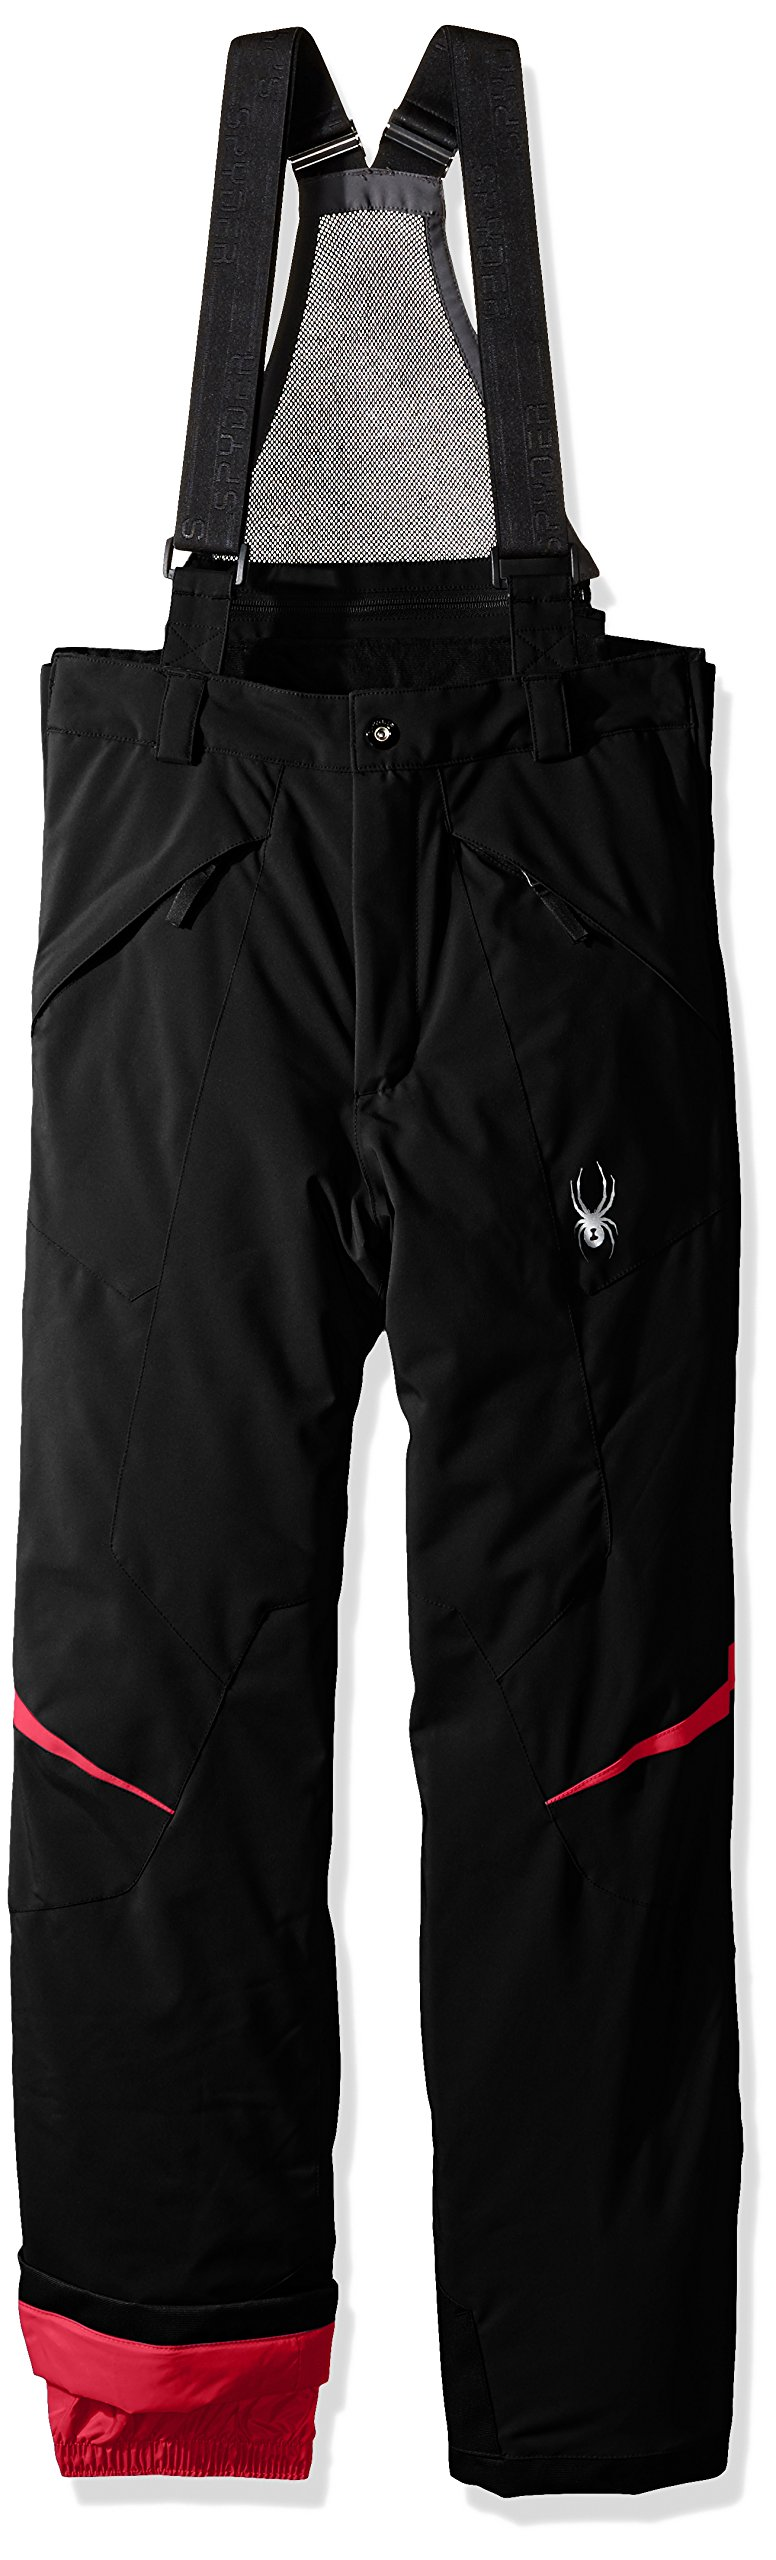 Spyder Boys Force Pants, Size 8, Black/Formula